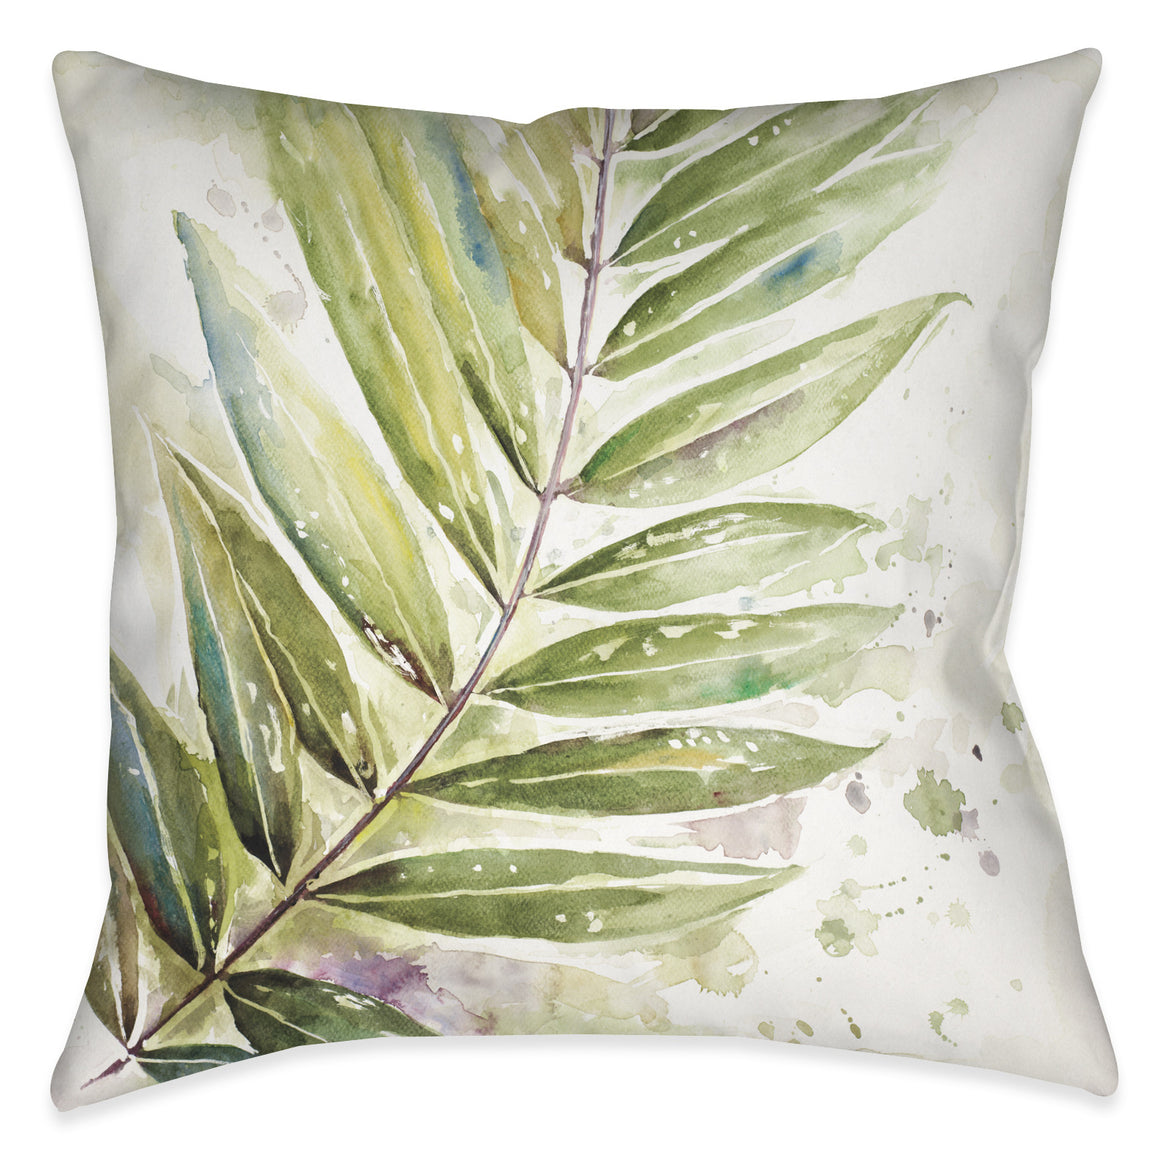 Watercolor Jungle I Indoor Decorative Pillow